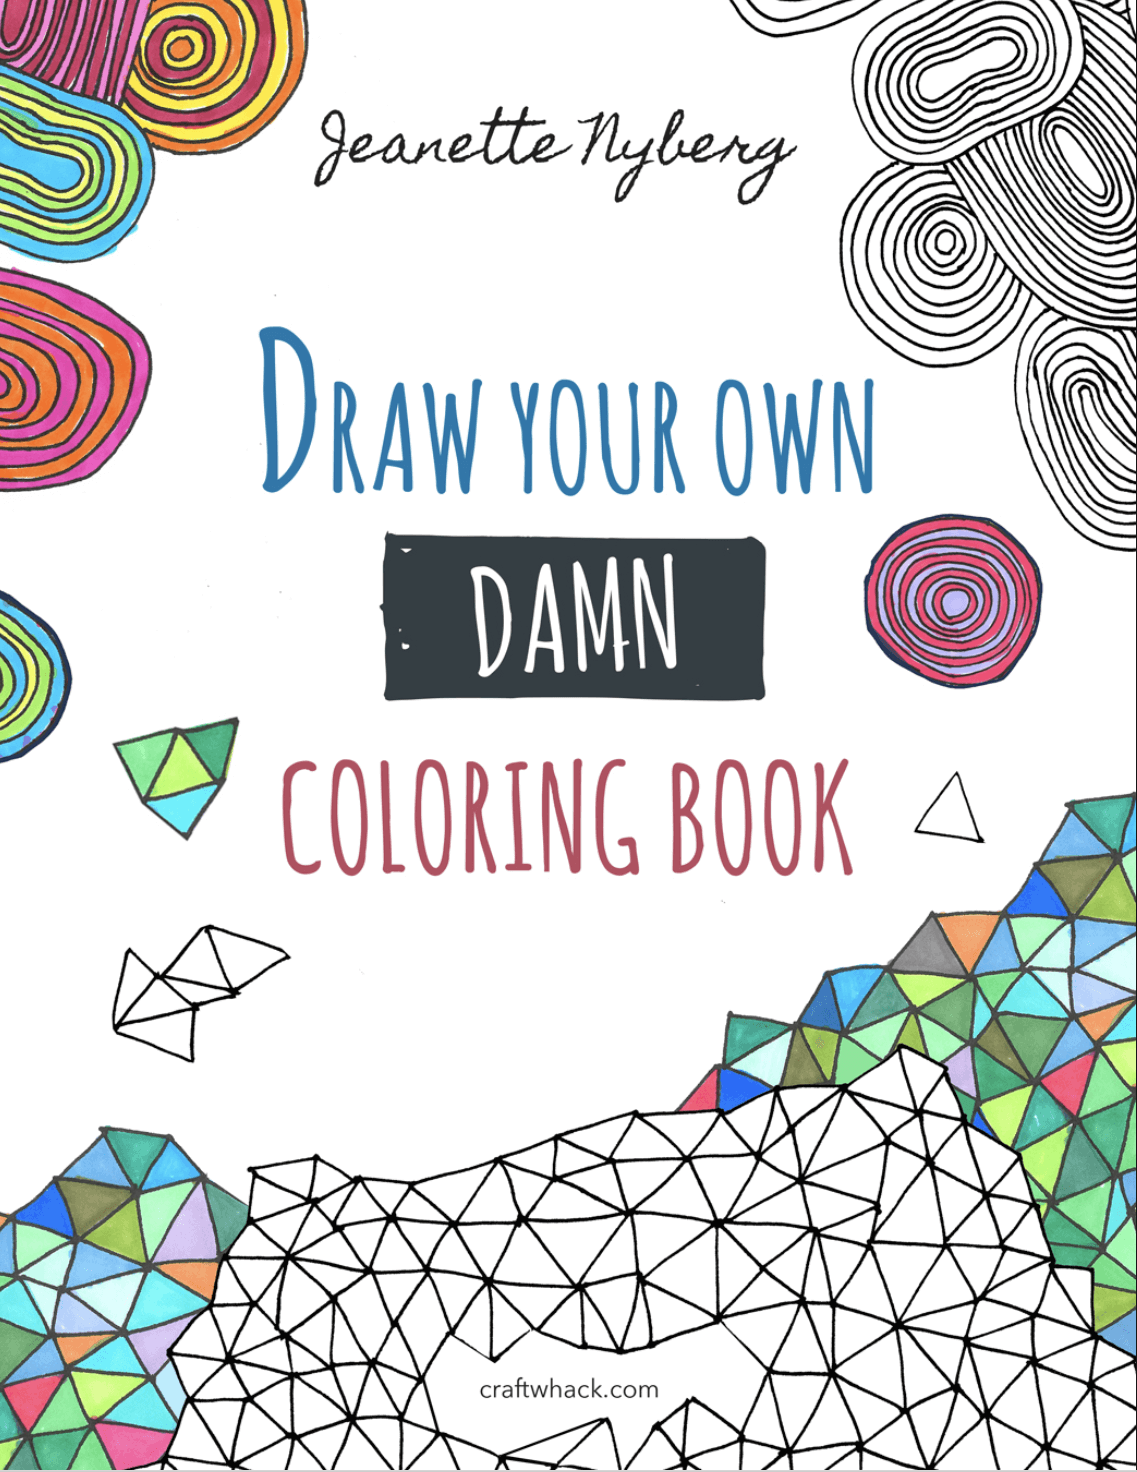 Coloring Books Are Fun Tools For Creative Relaxation But If You Want A Bit More